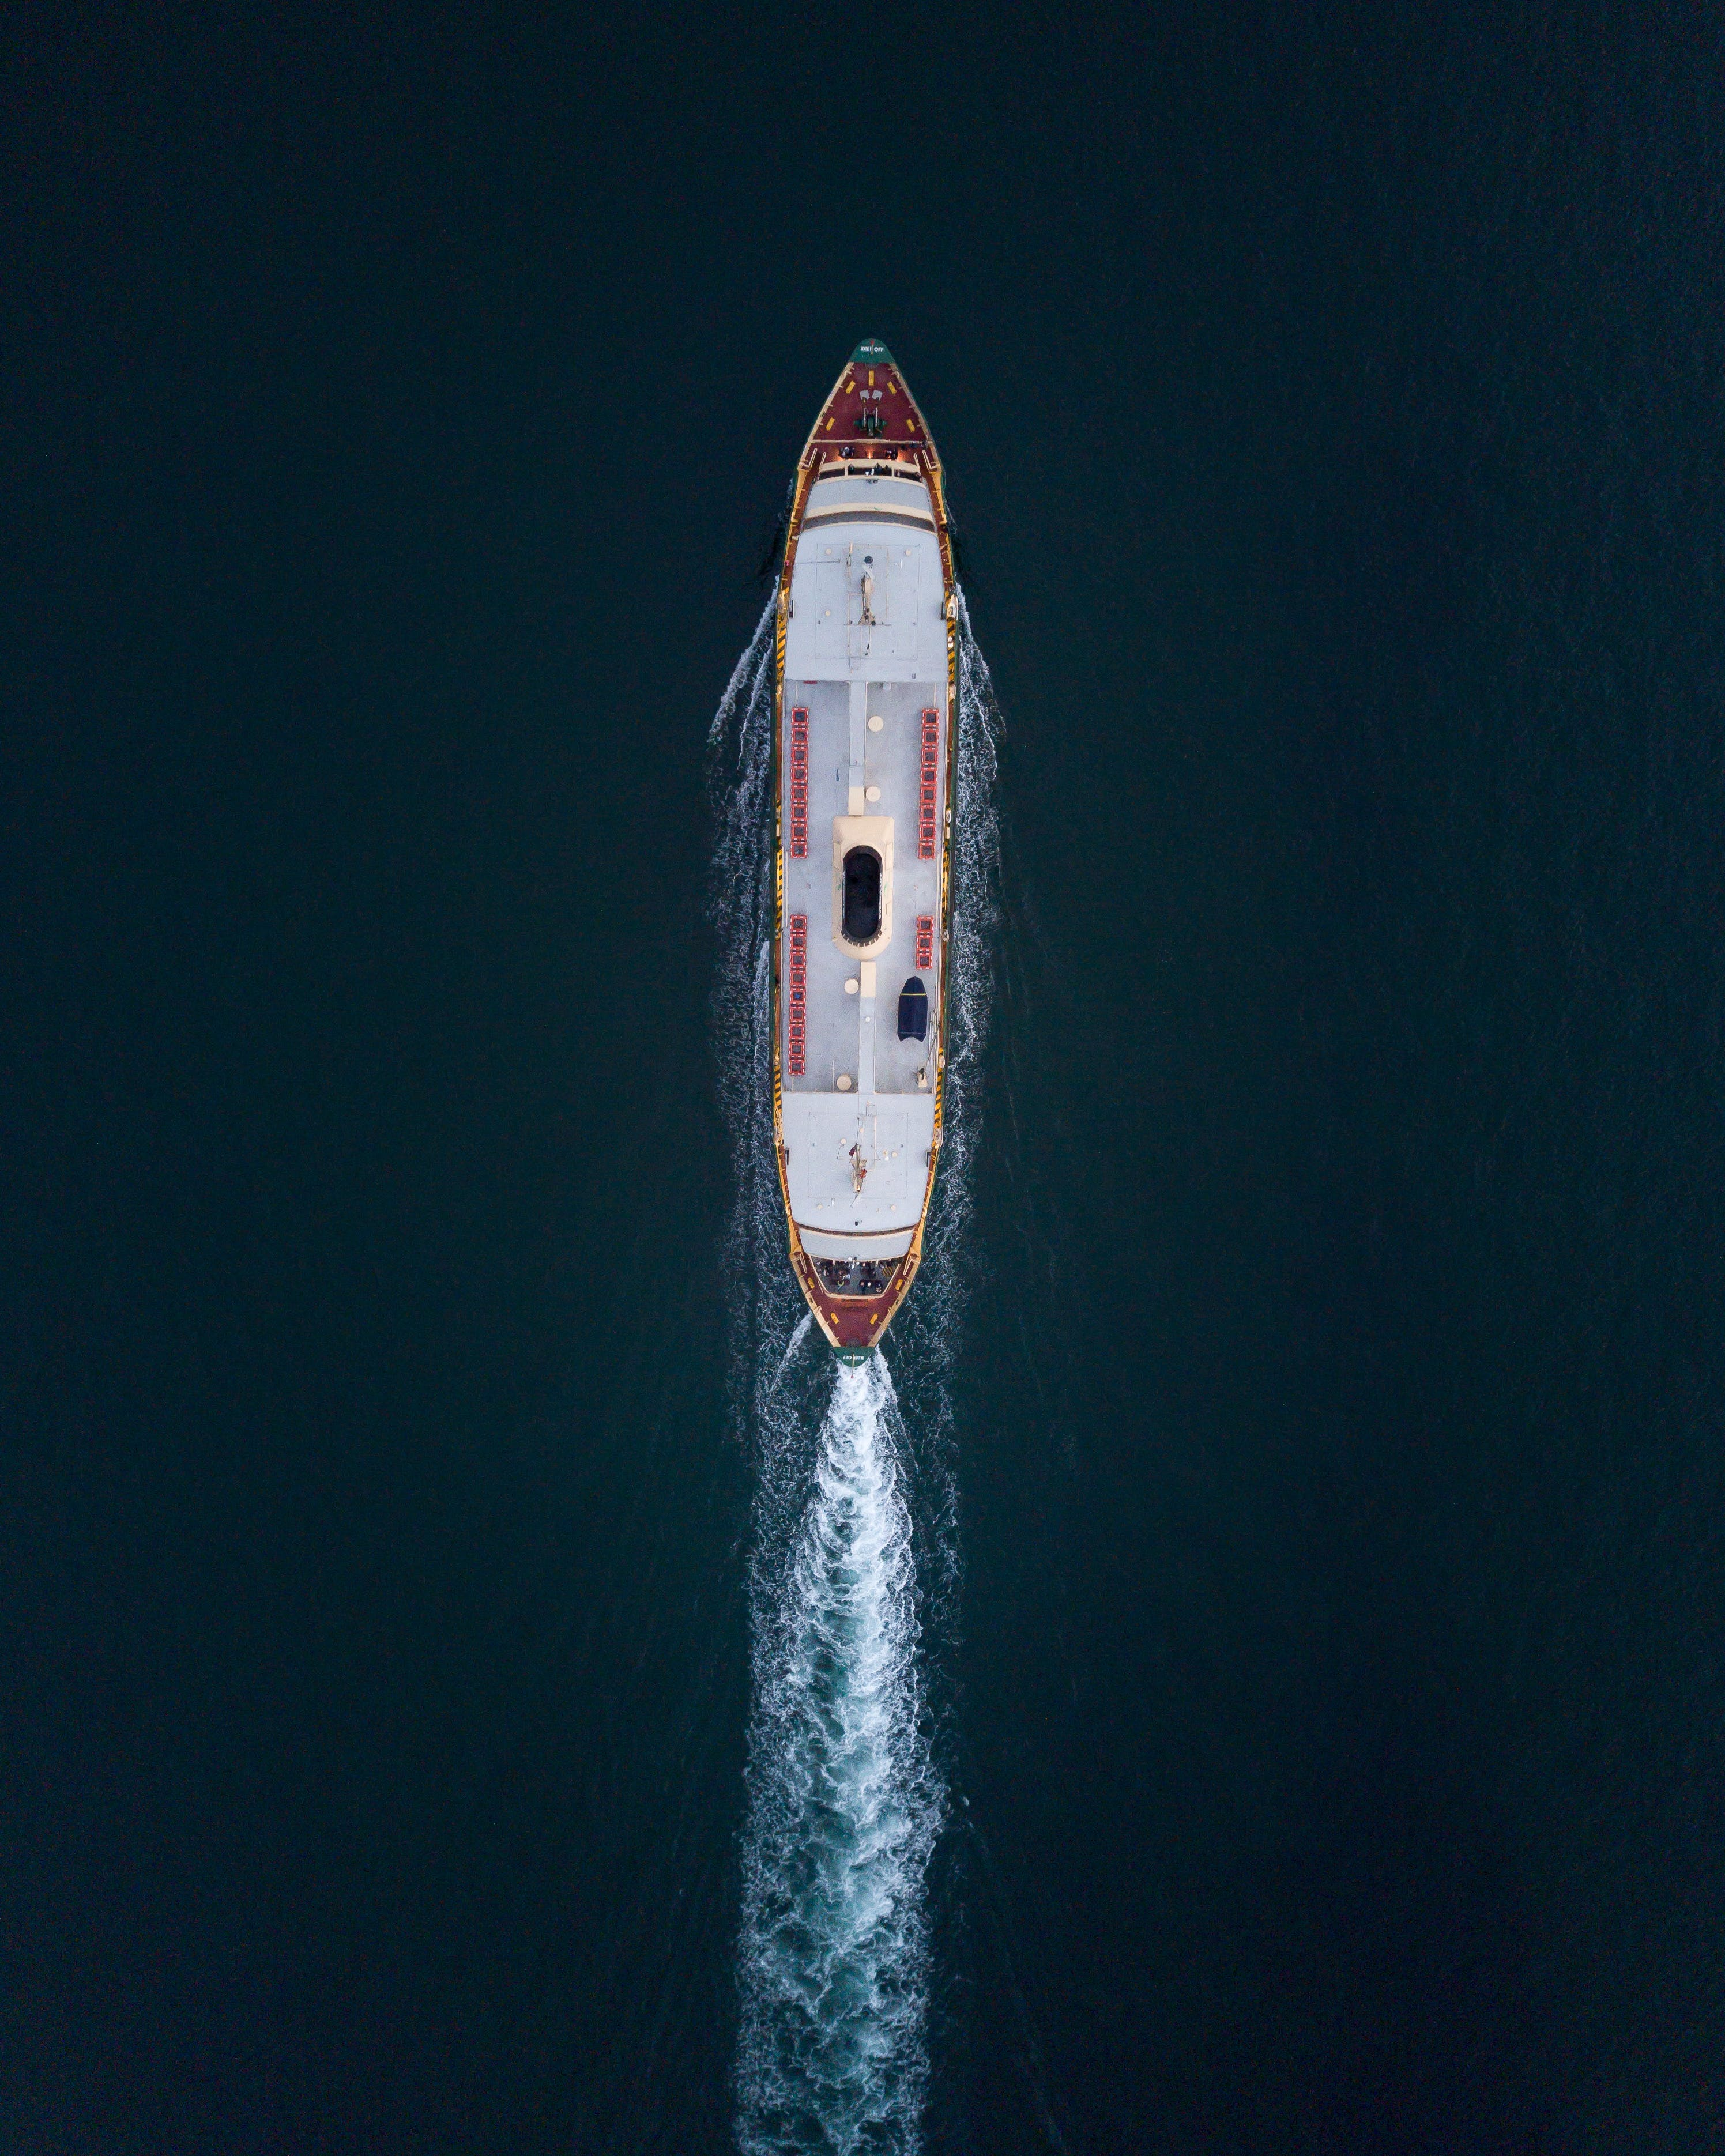 Aerial View of Ship on Body of Water